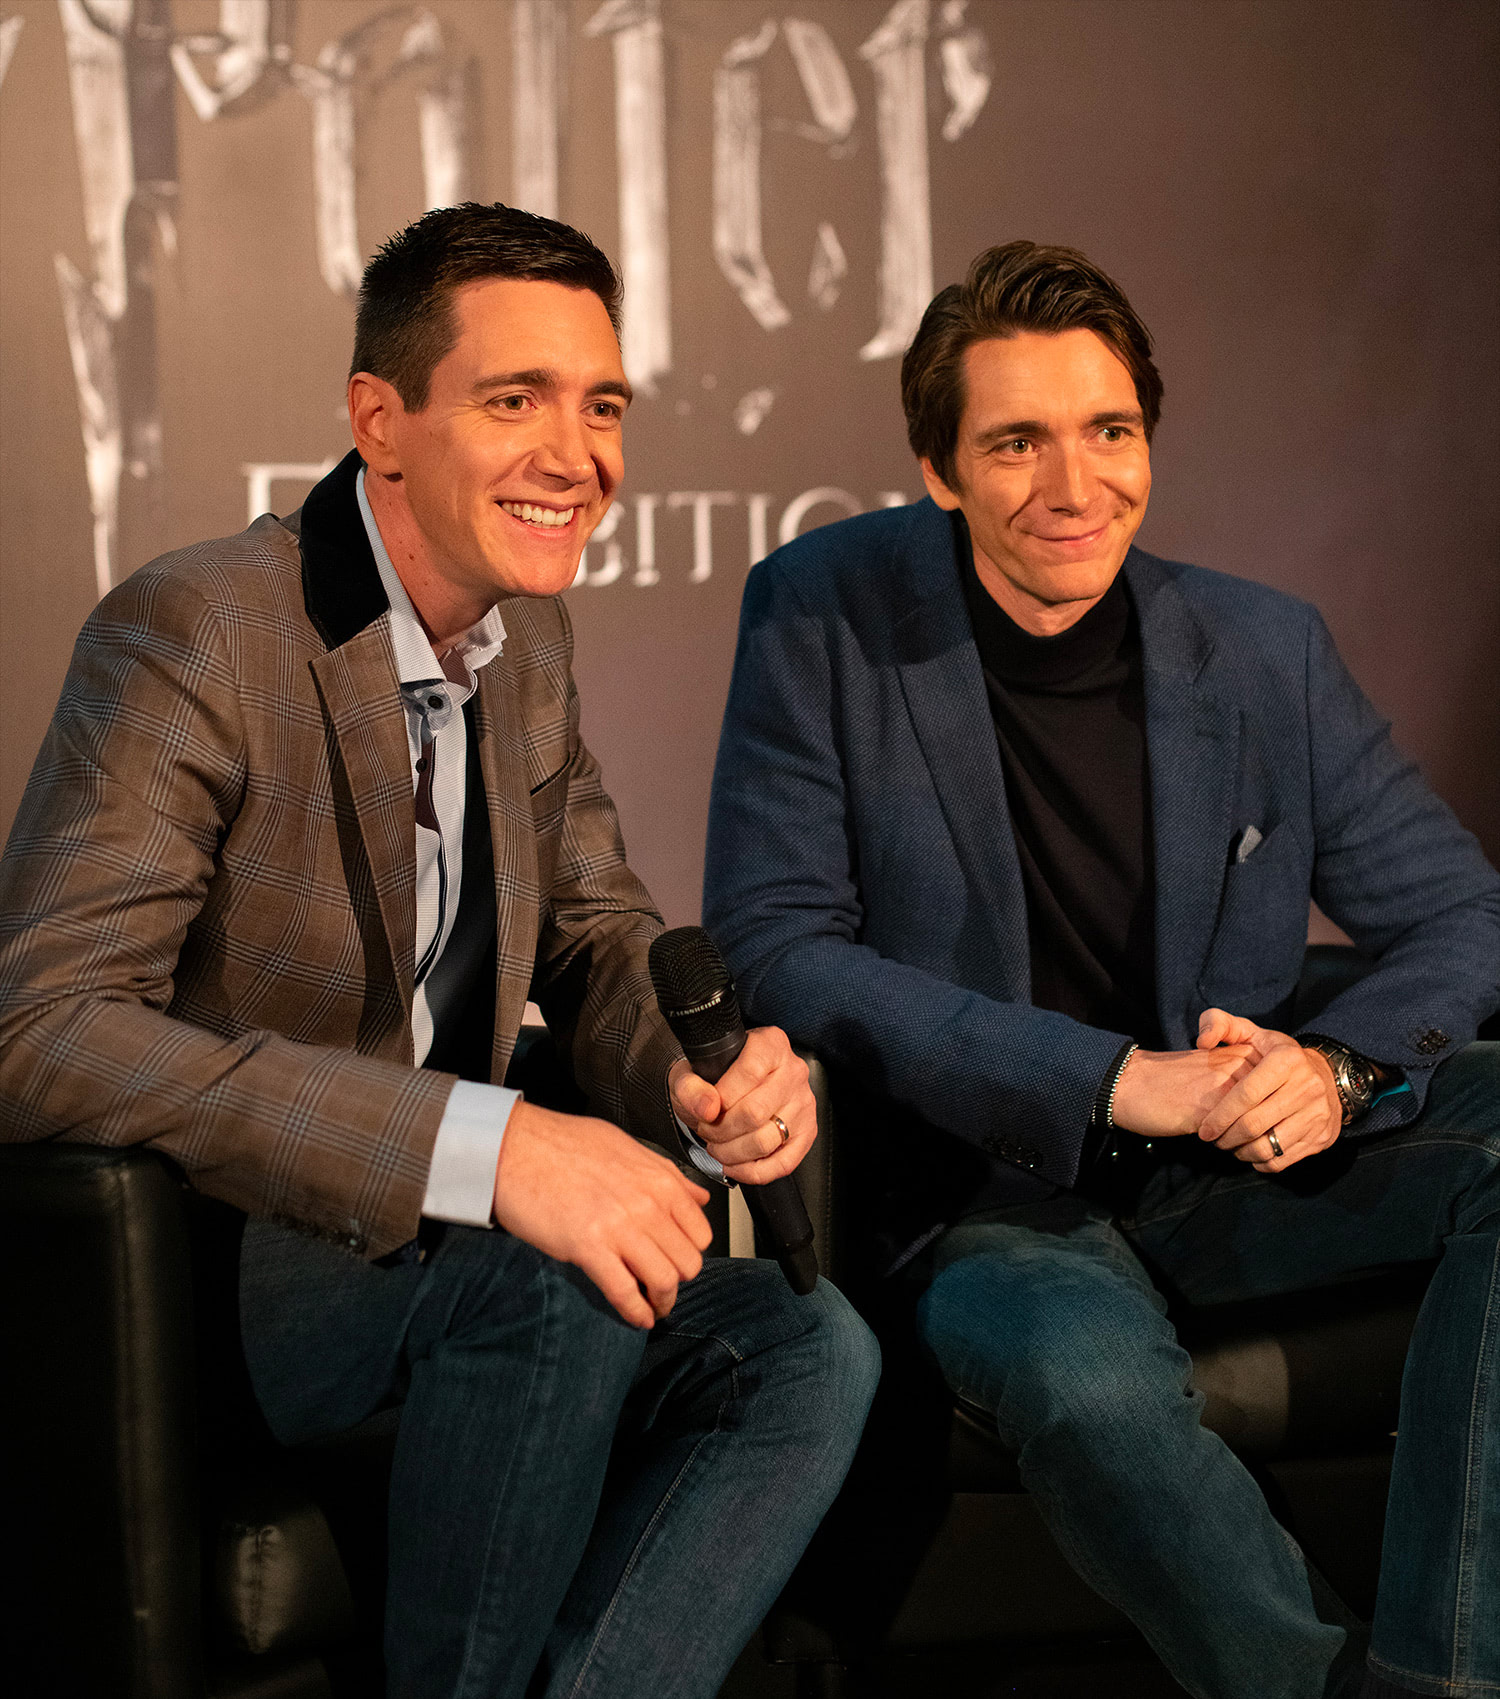 James and Oliver Phelps launch 'Harry Potter: The Exhibition' in Lisbon